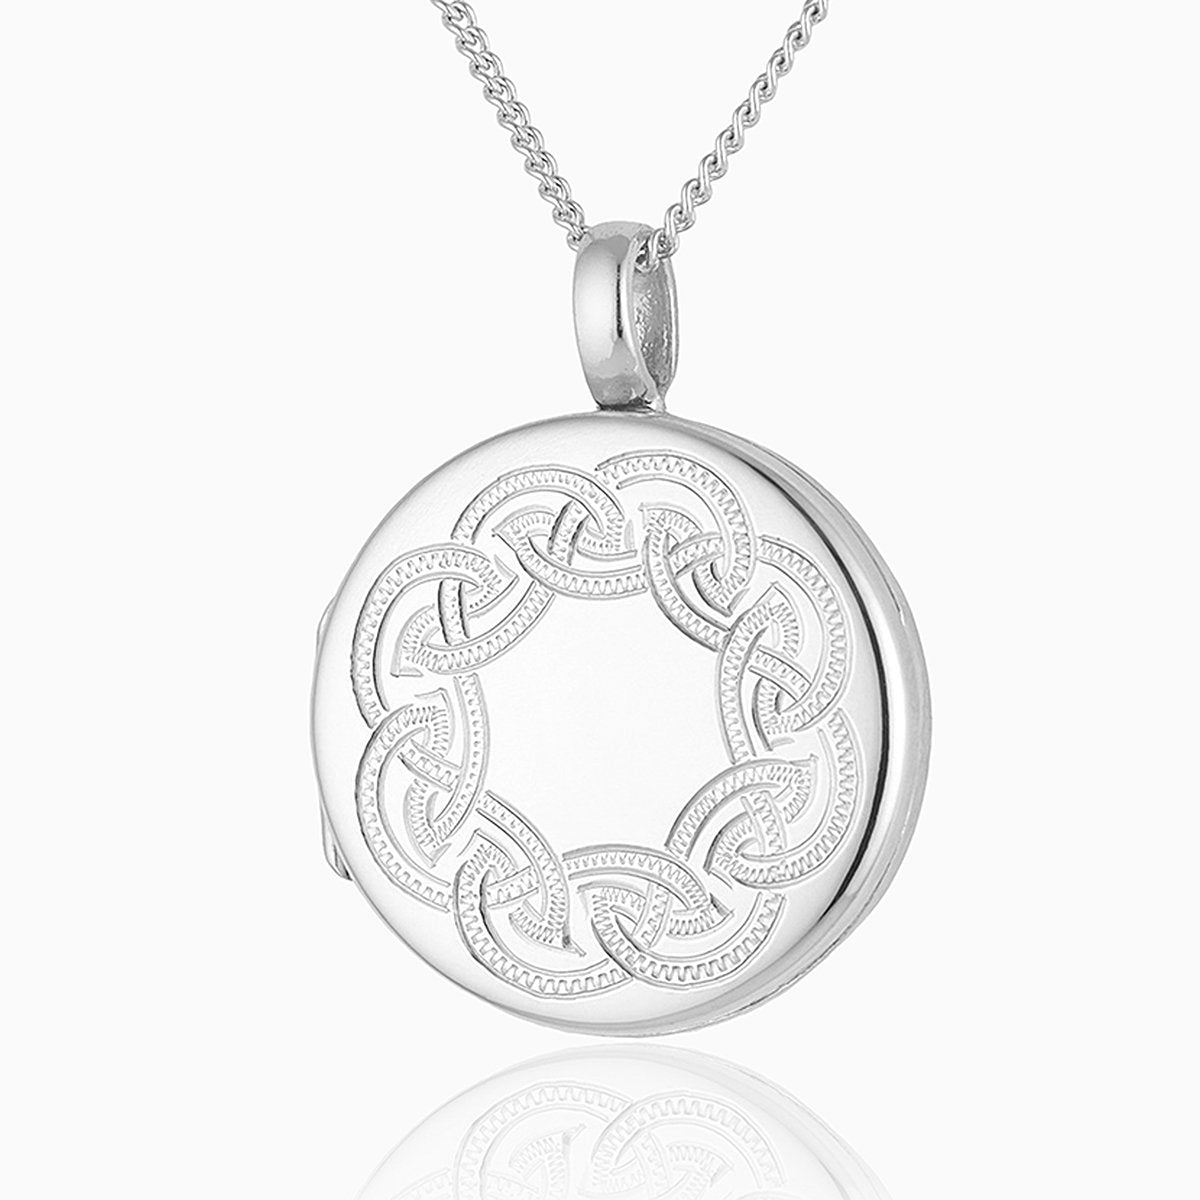 Product title: Handmade Celtic Weave Silver Locket, product type: Locket